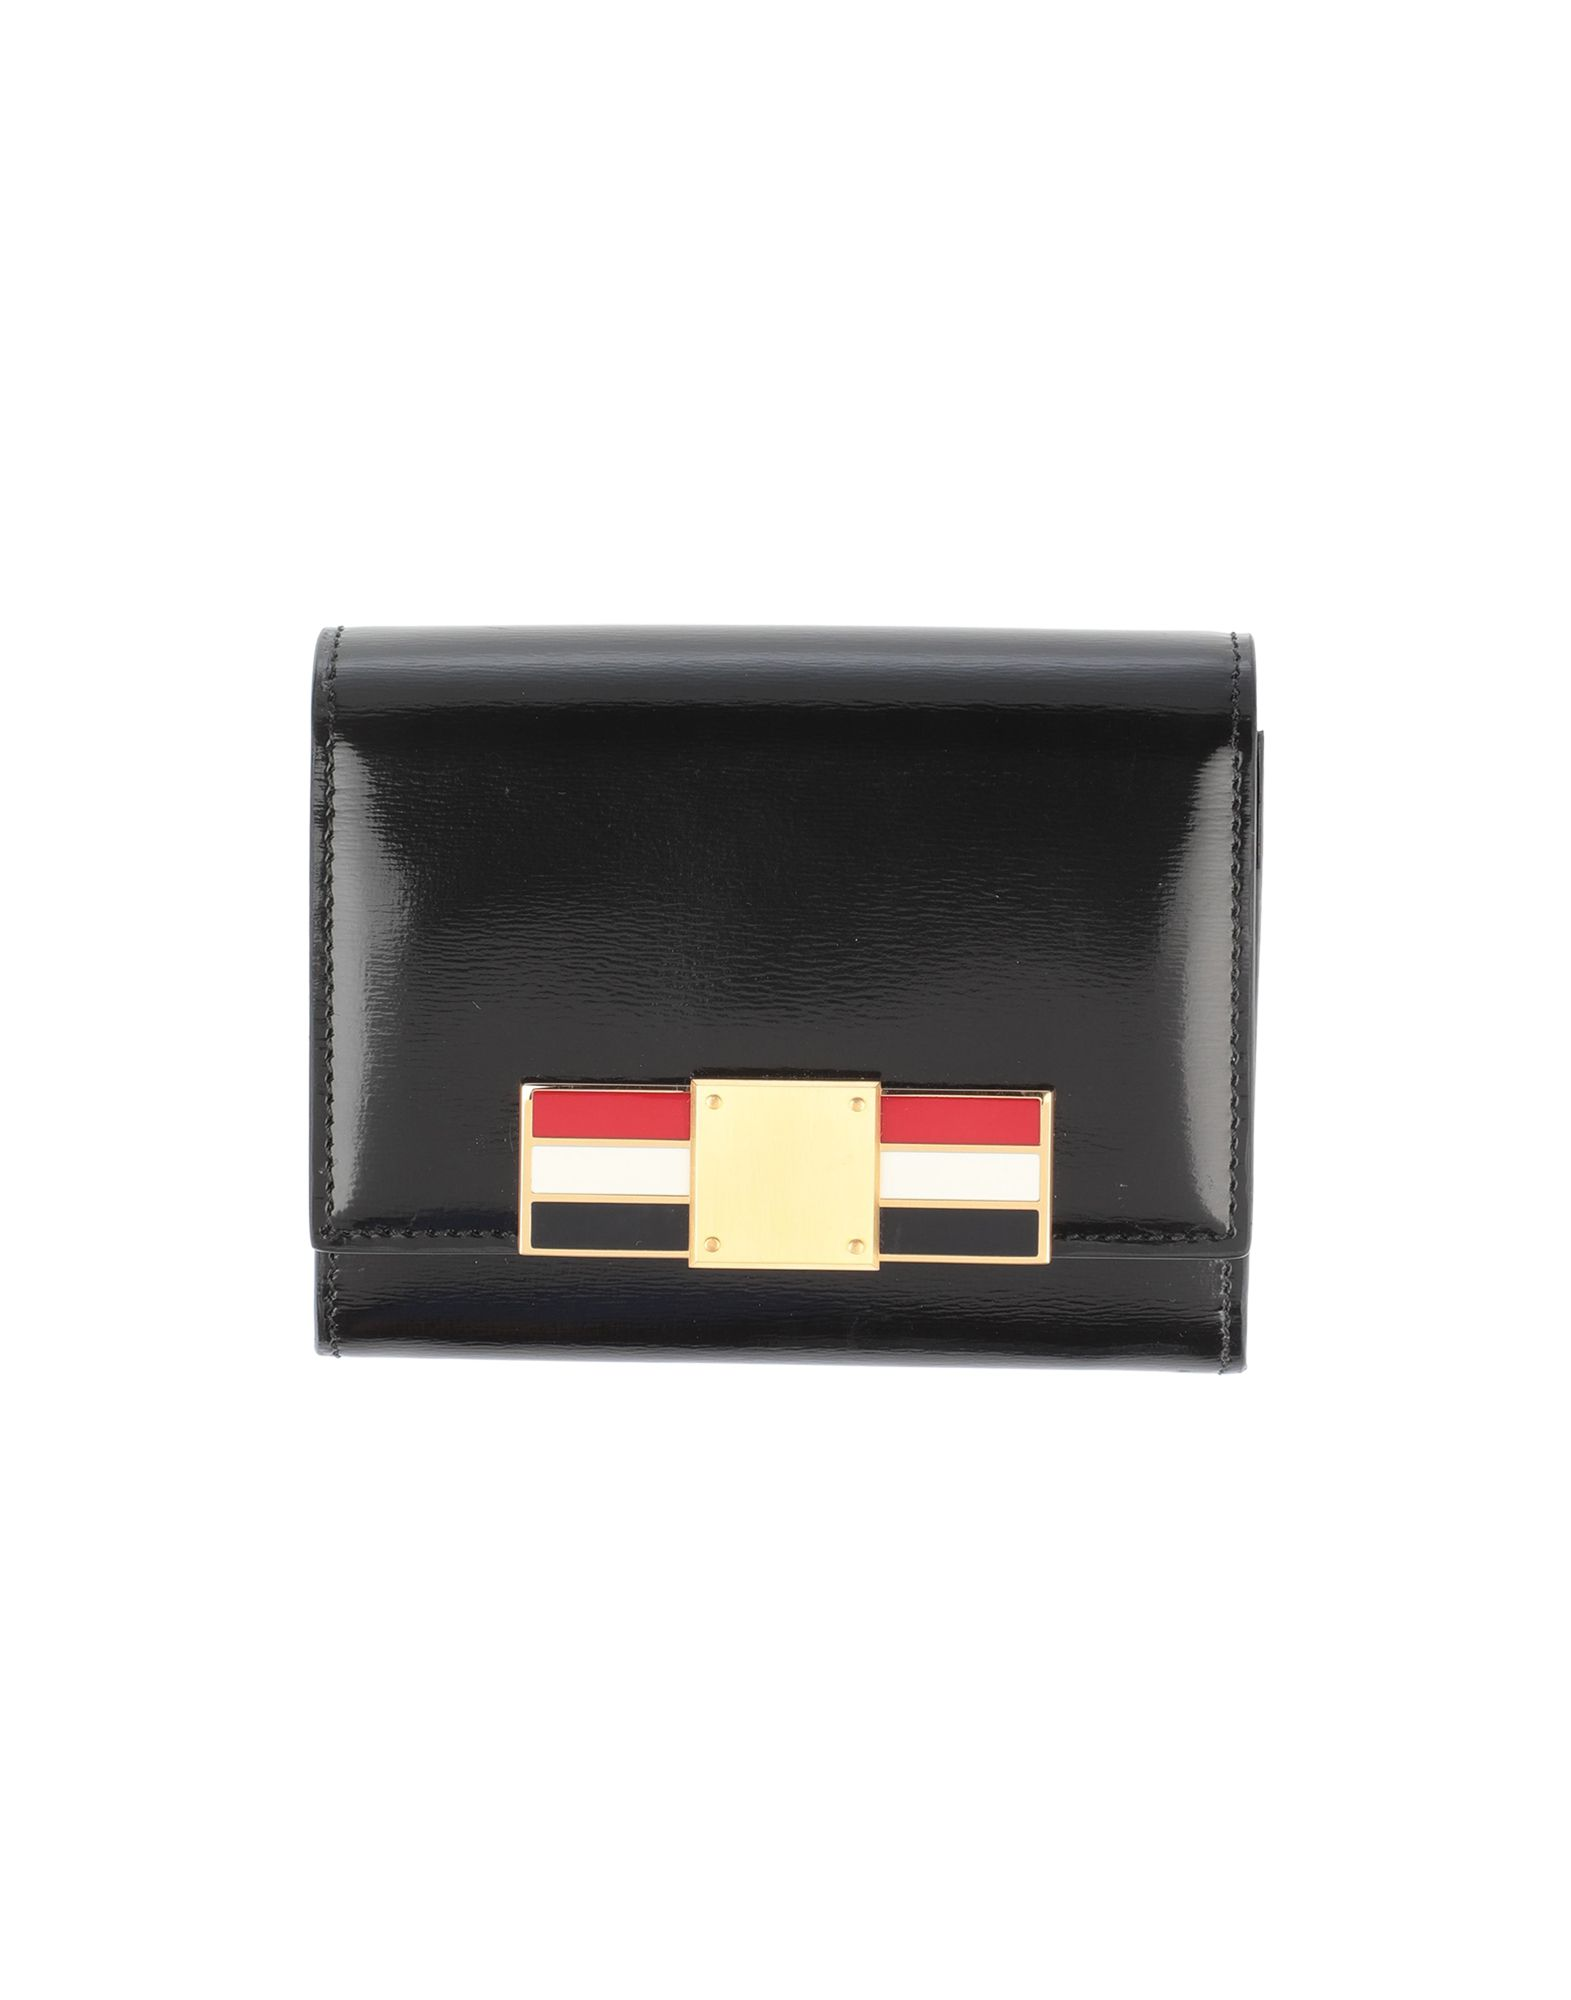 THOM BROWNE Wallets. leather, metal applications, logo, solid color, snap buttons fastening, contains non-textile parts of animal origin. Soft Leather